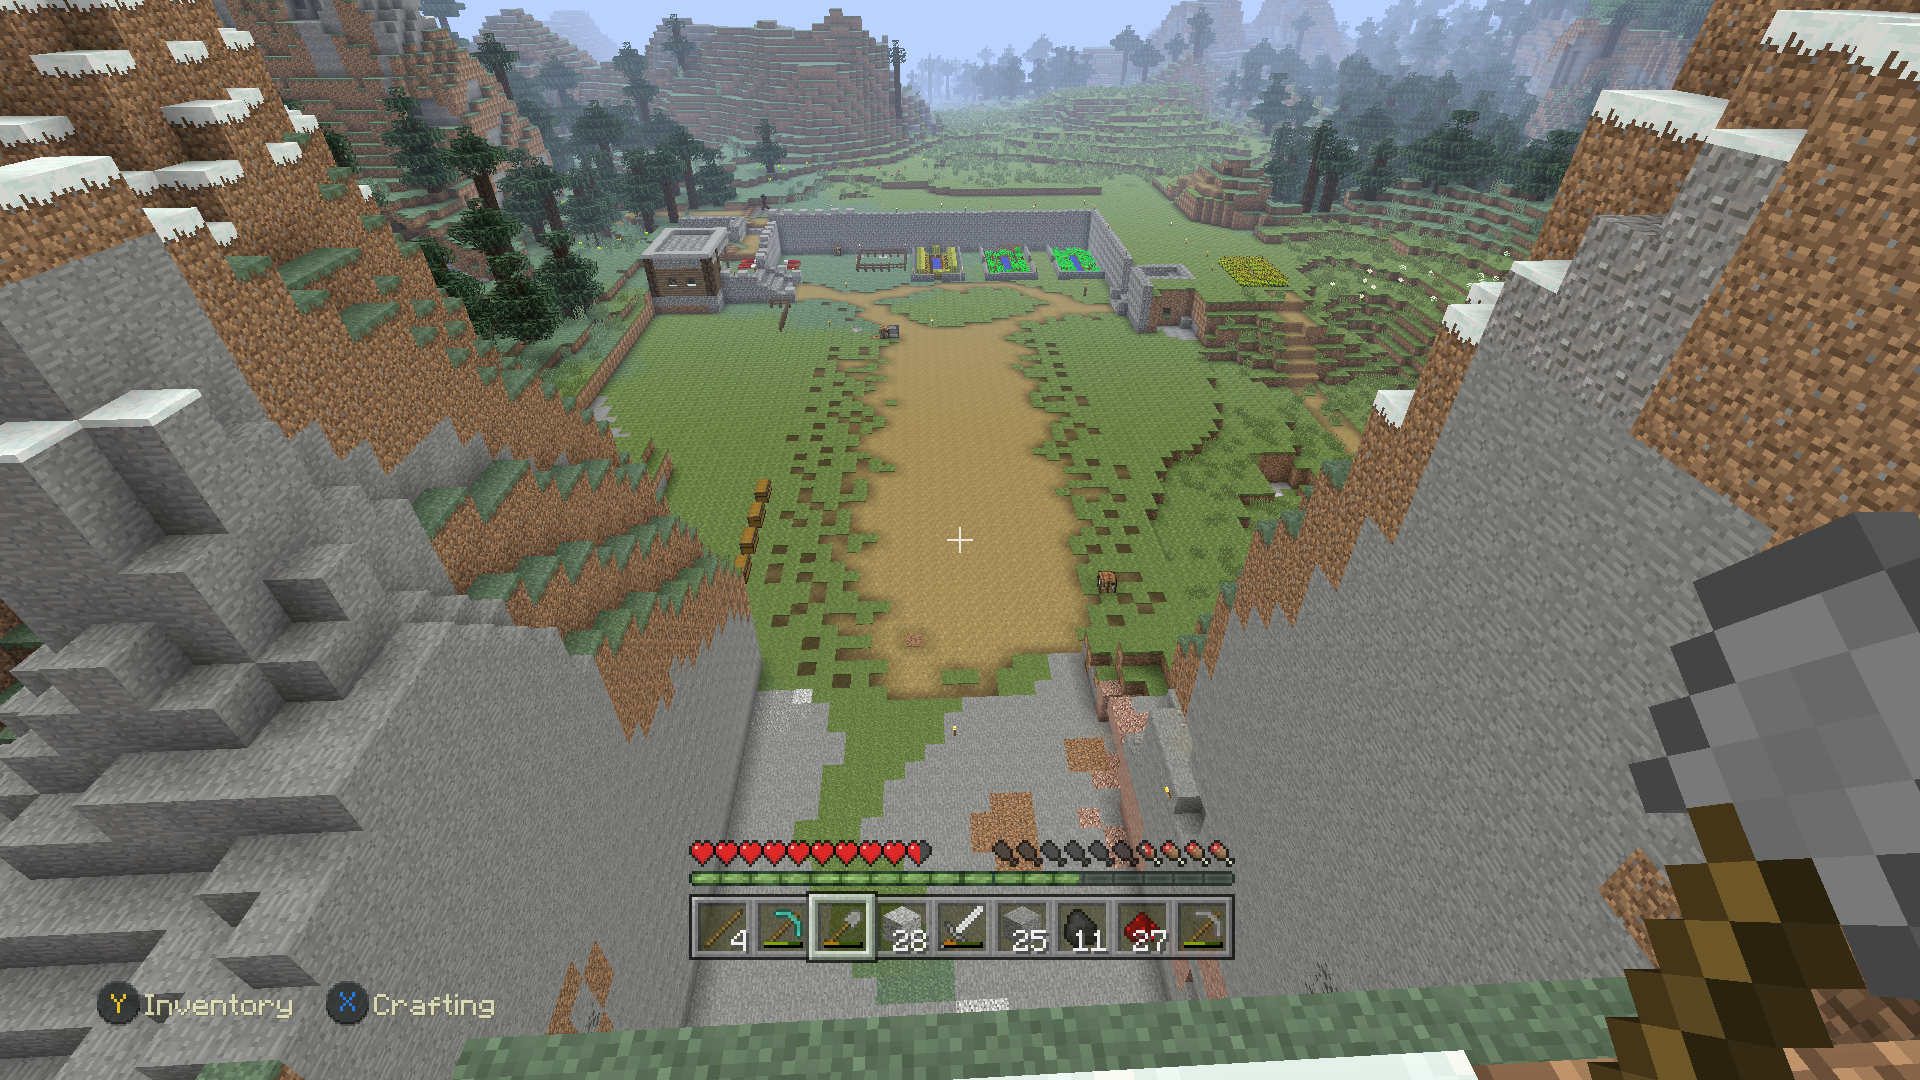 Redstone Valley' Xbox One Minecraft server  (future realm in the